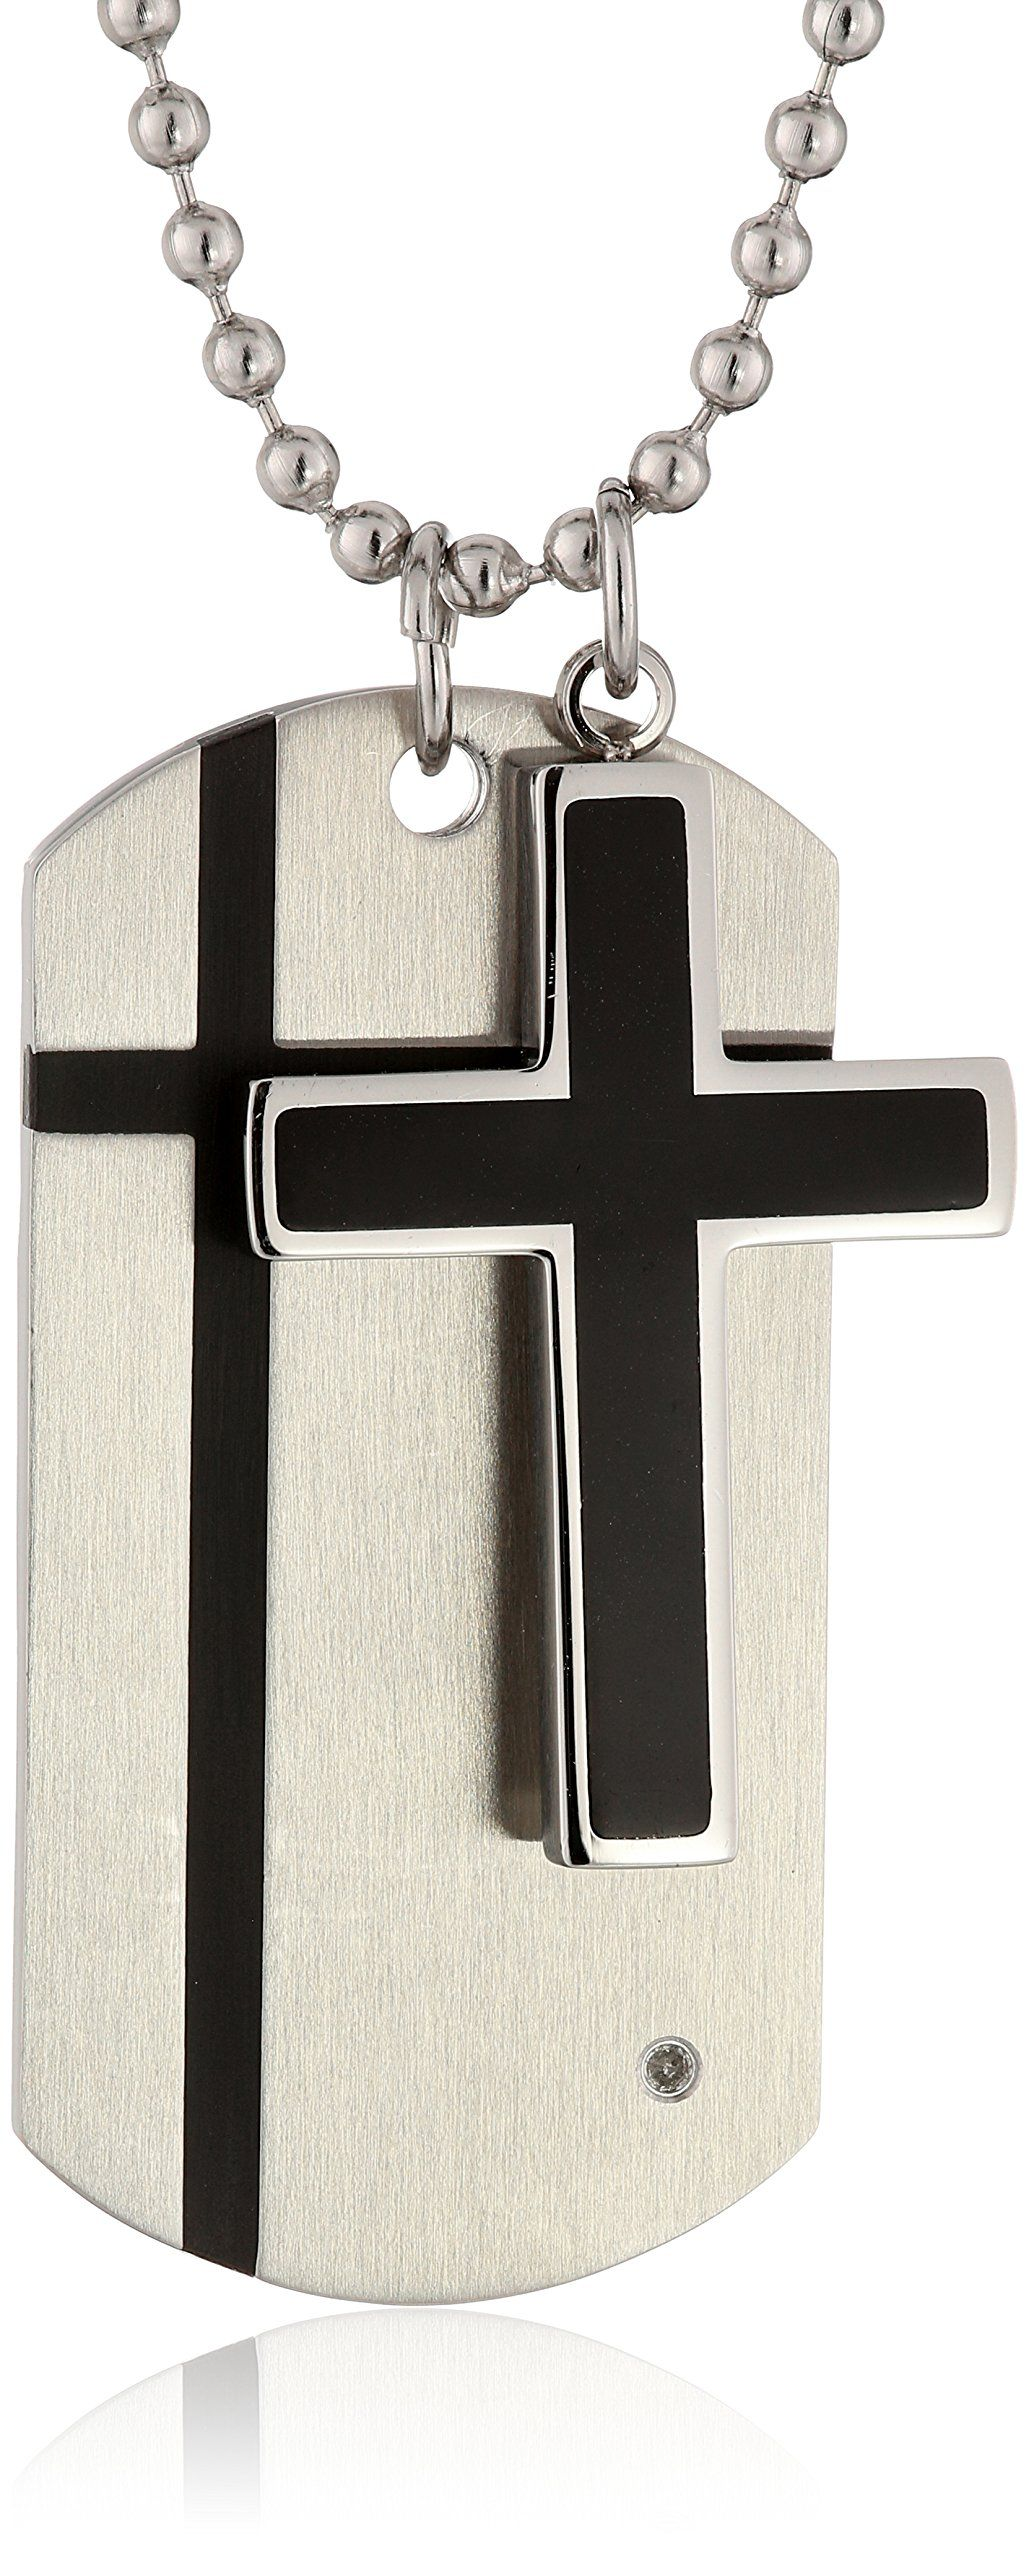 Cold Steel Stainless Steel Black Immersion Plate Cross and 0.01Ct Diamond Dog Tag Men's Pendant Necklace. Stainless steel is hypoallergenic & does not tarnish- accent brown immersion plate. Imported.